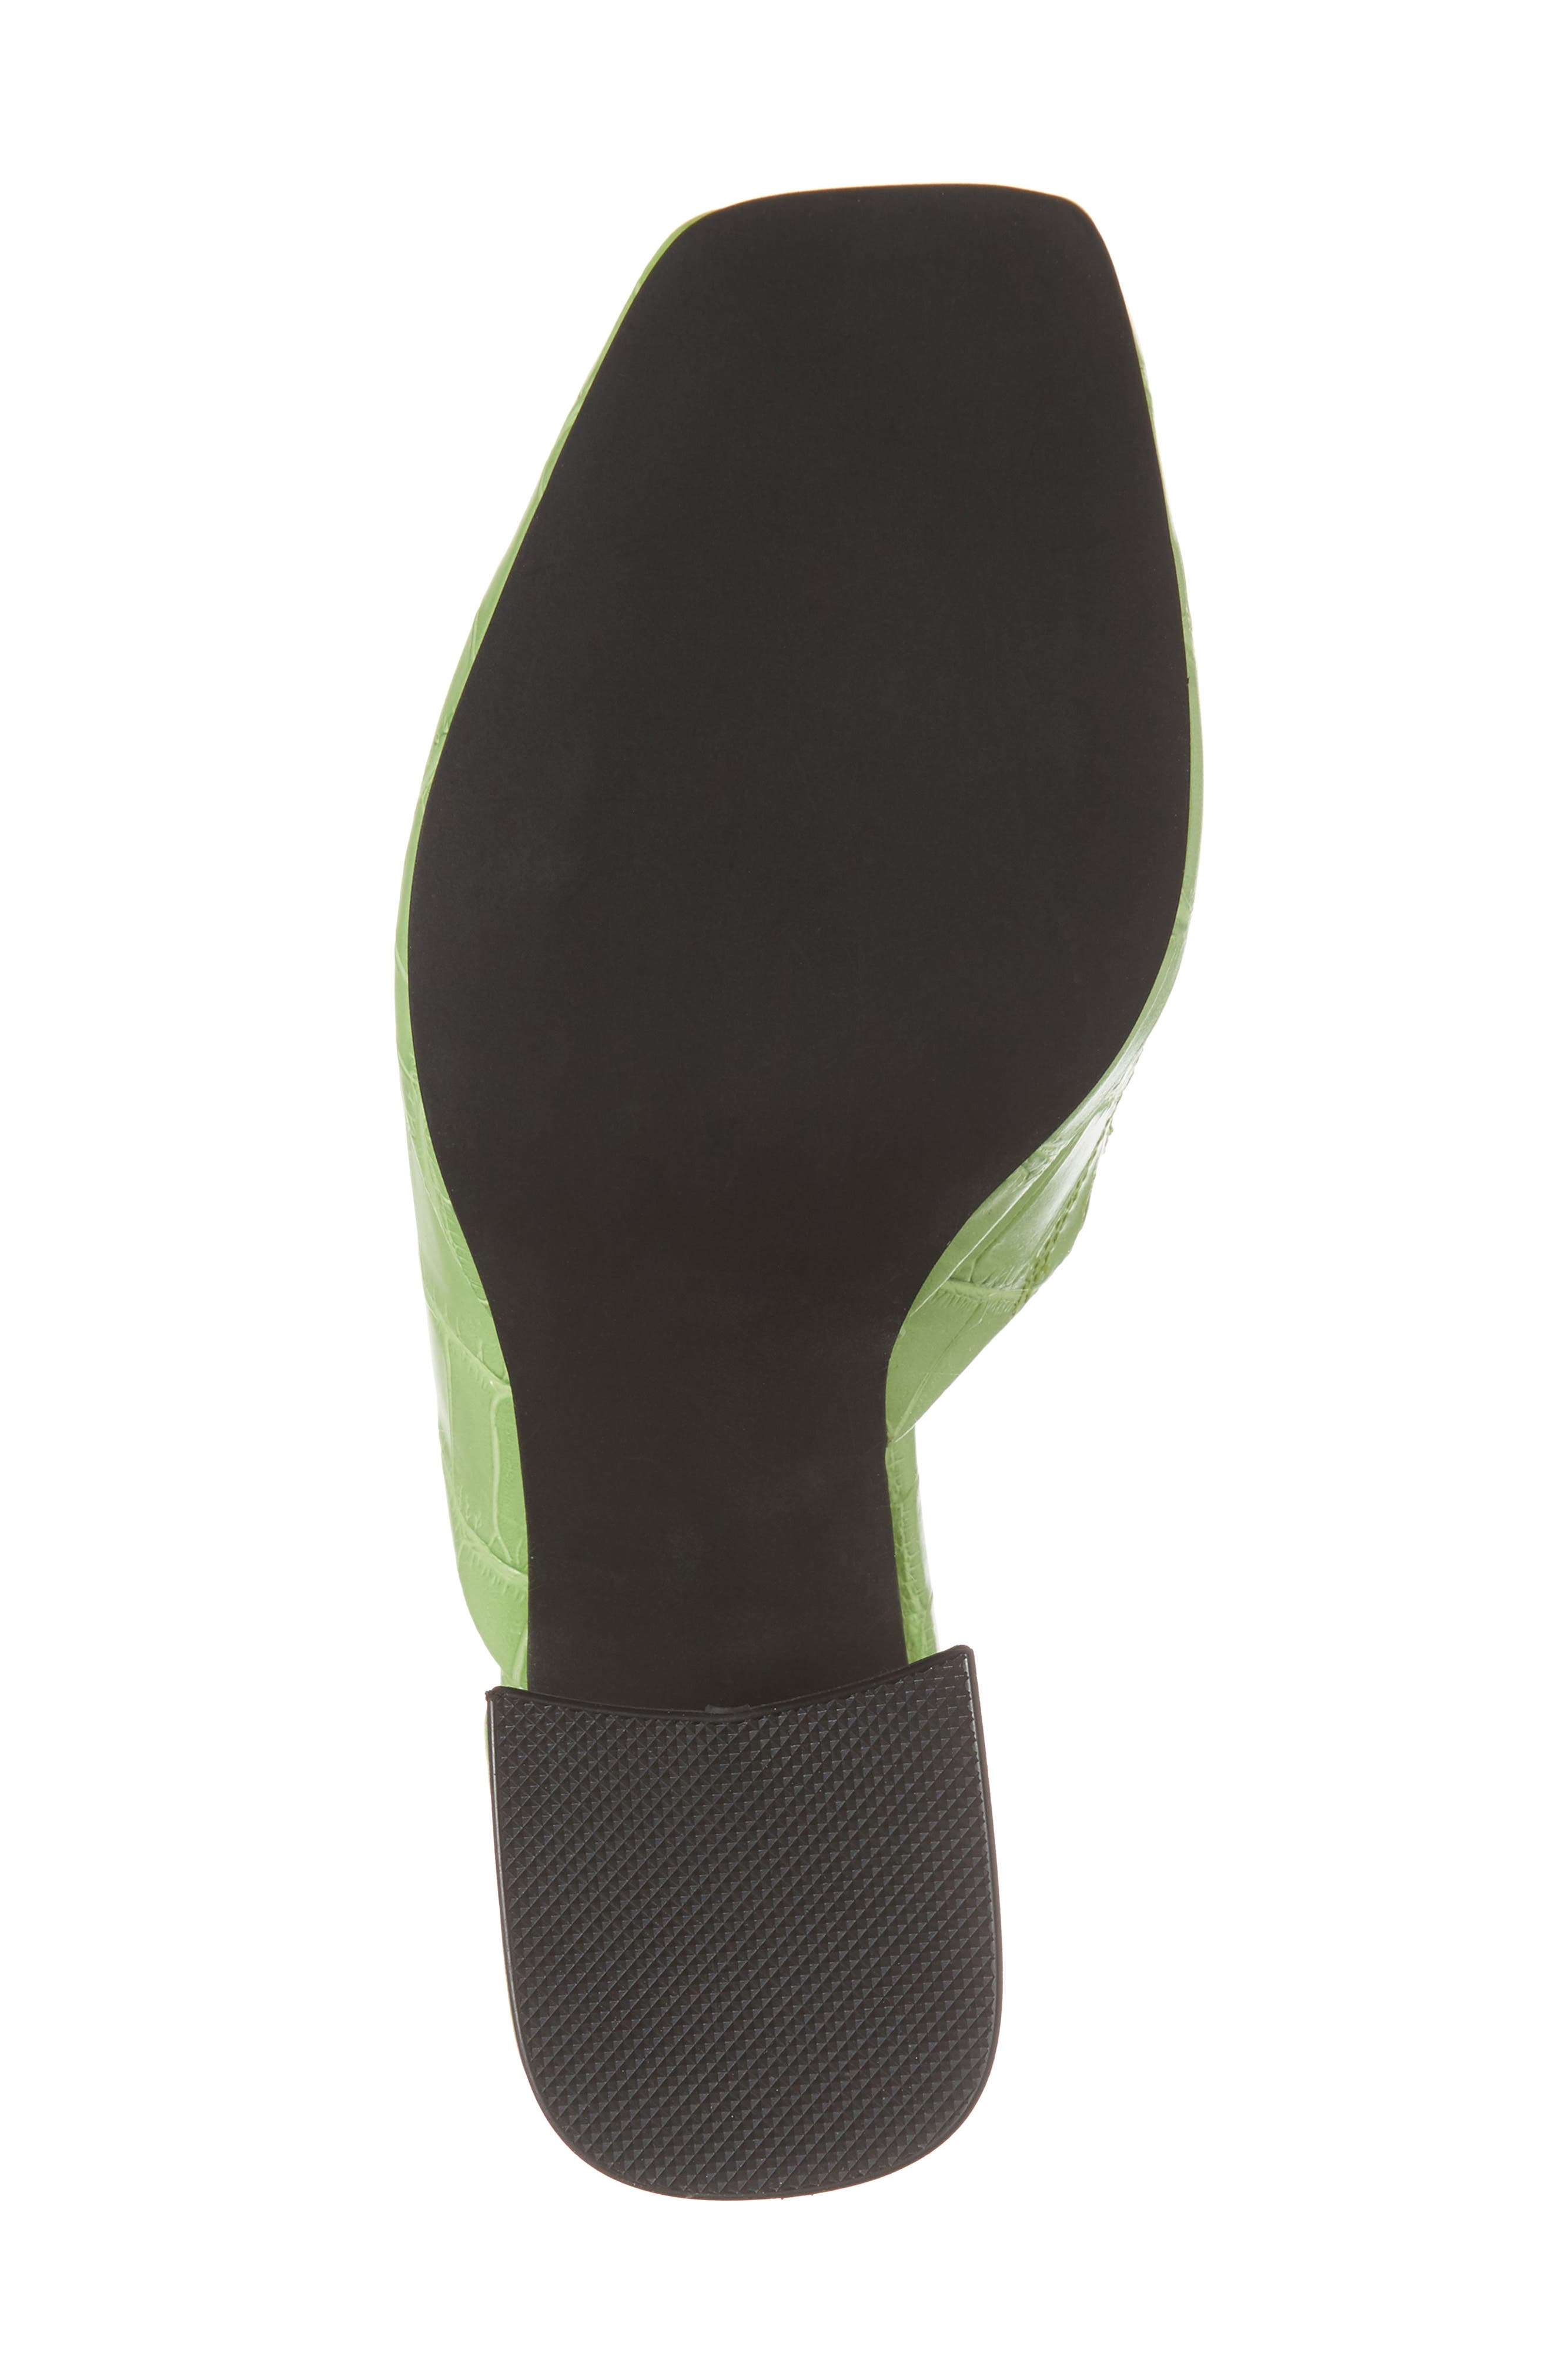 Suzuci Sandal,                             Alternate thumbnail 6, color,                             Green Leather